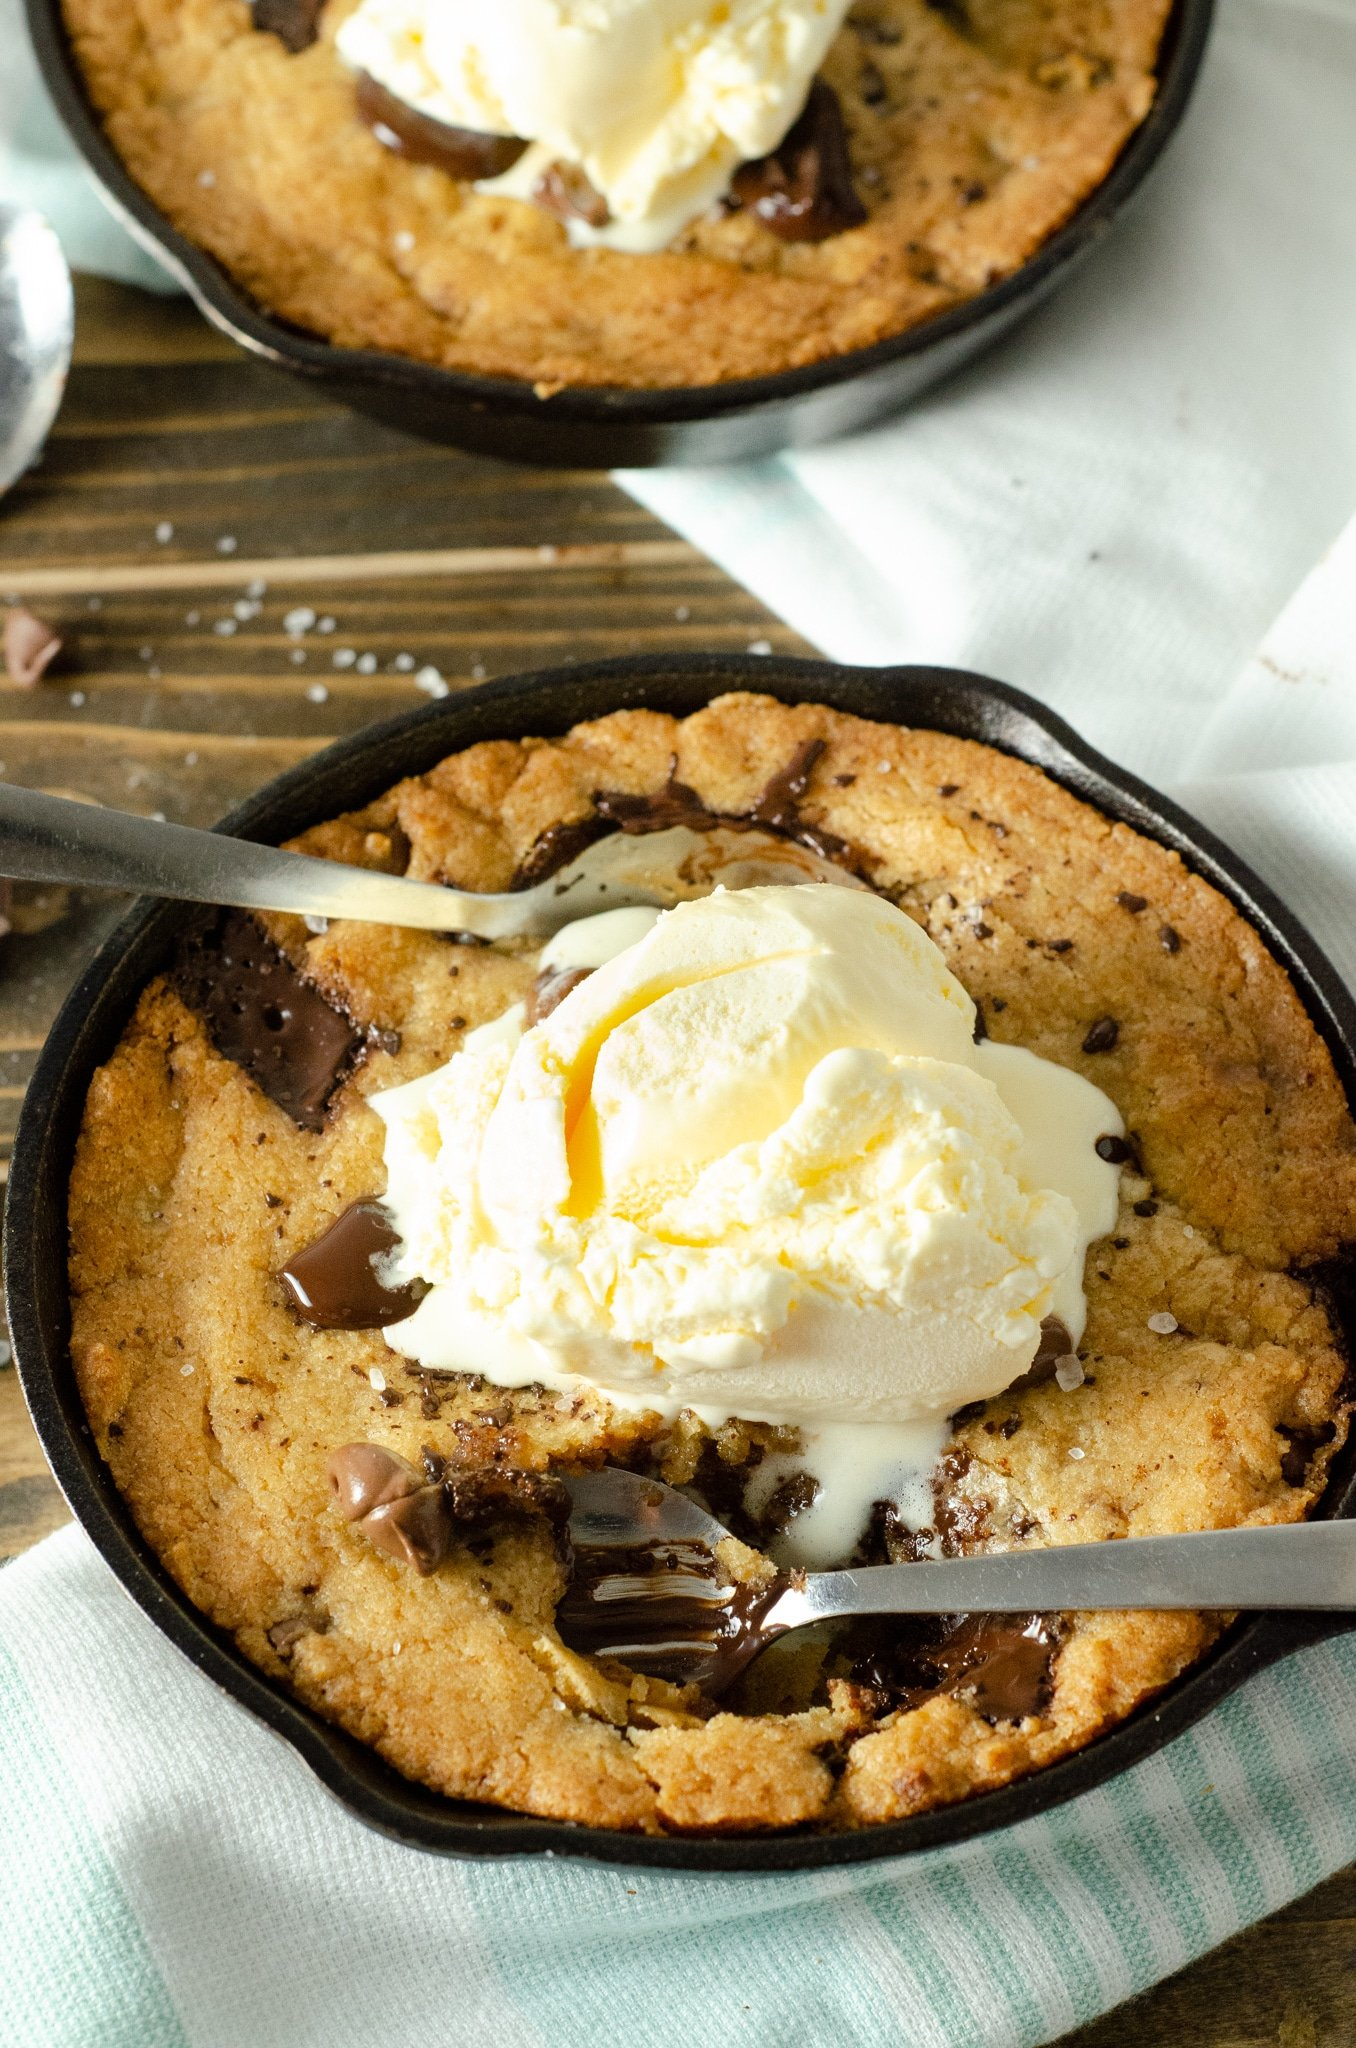 Chocolate Chip Skillet Cookie. This brown butter Chocolate Chip Skillet Cookie is packed with chunks of chocolate and topped with sea salt, it's the perfect dessert for two. The insanely soft center and crispy buttery edges will have you falling in love with this easy pizookie recipe.